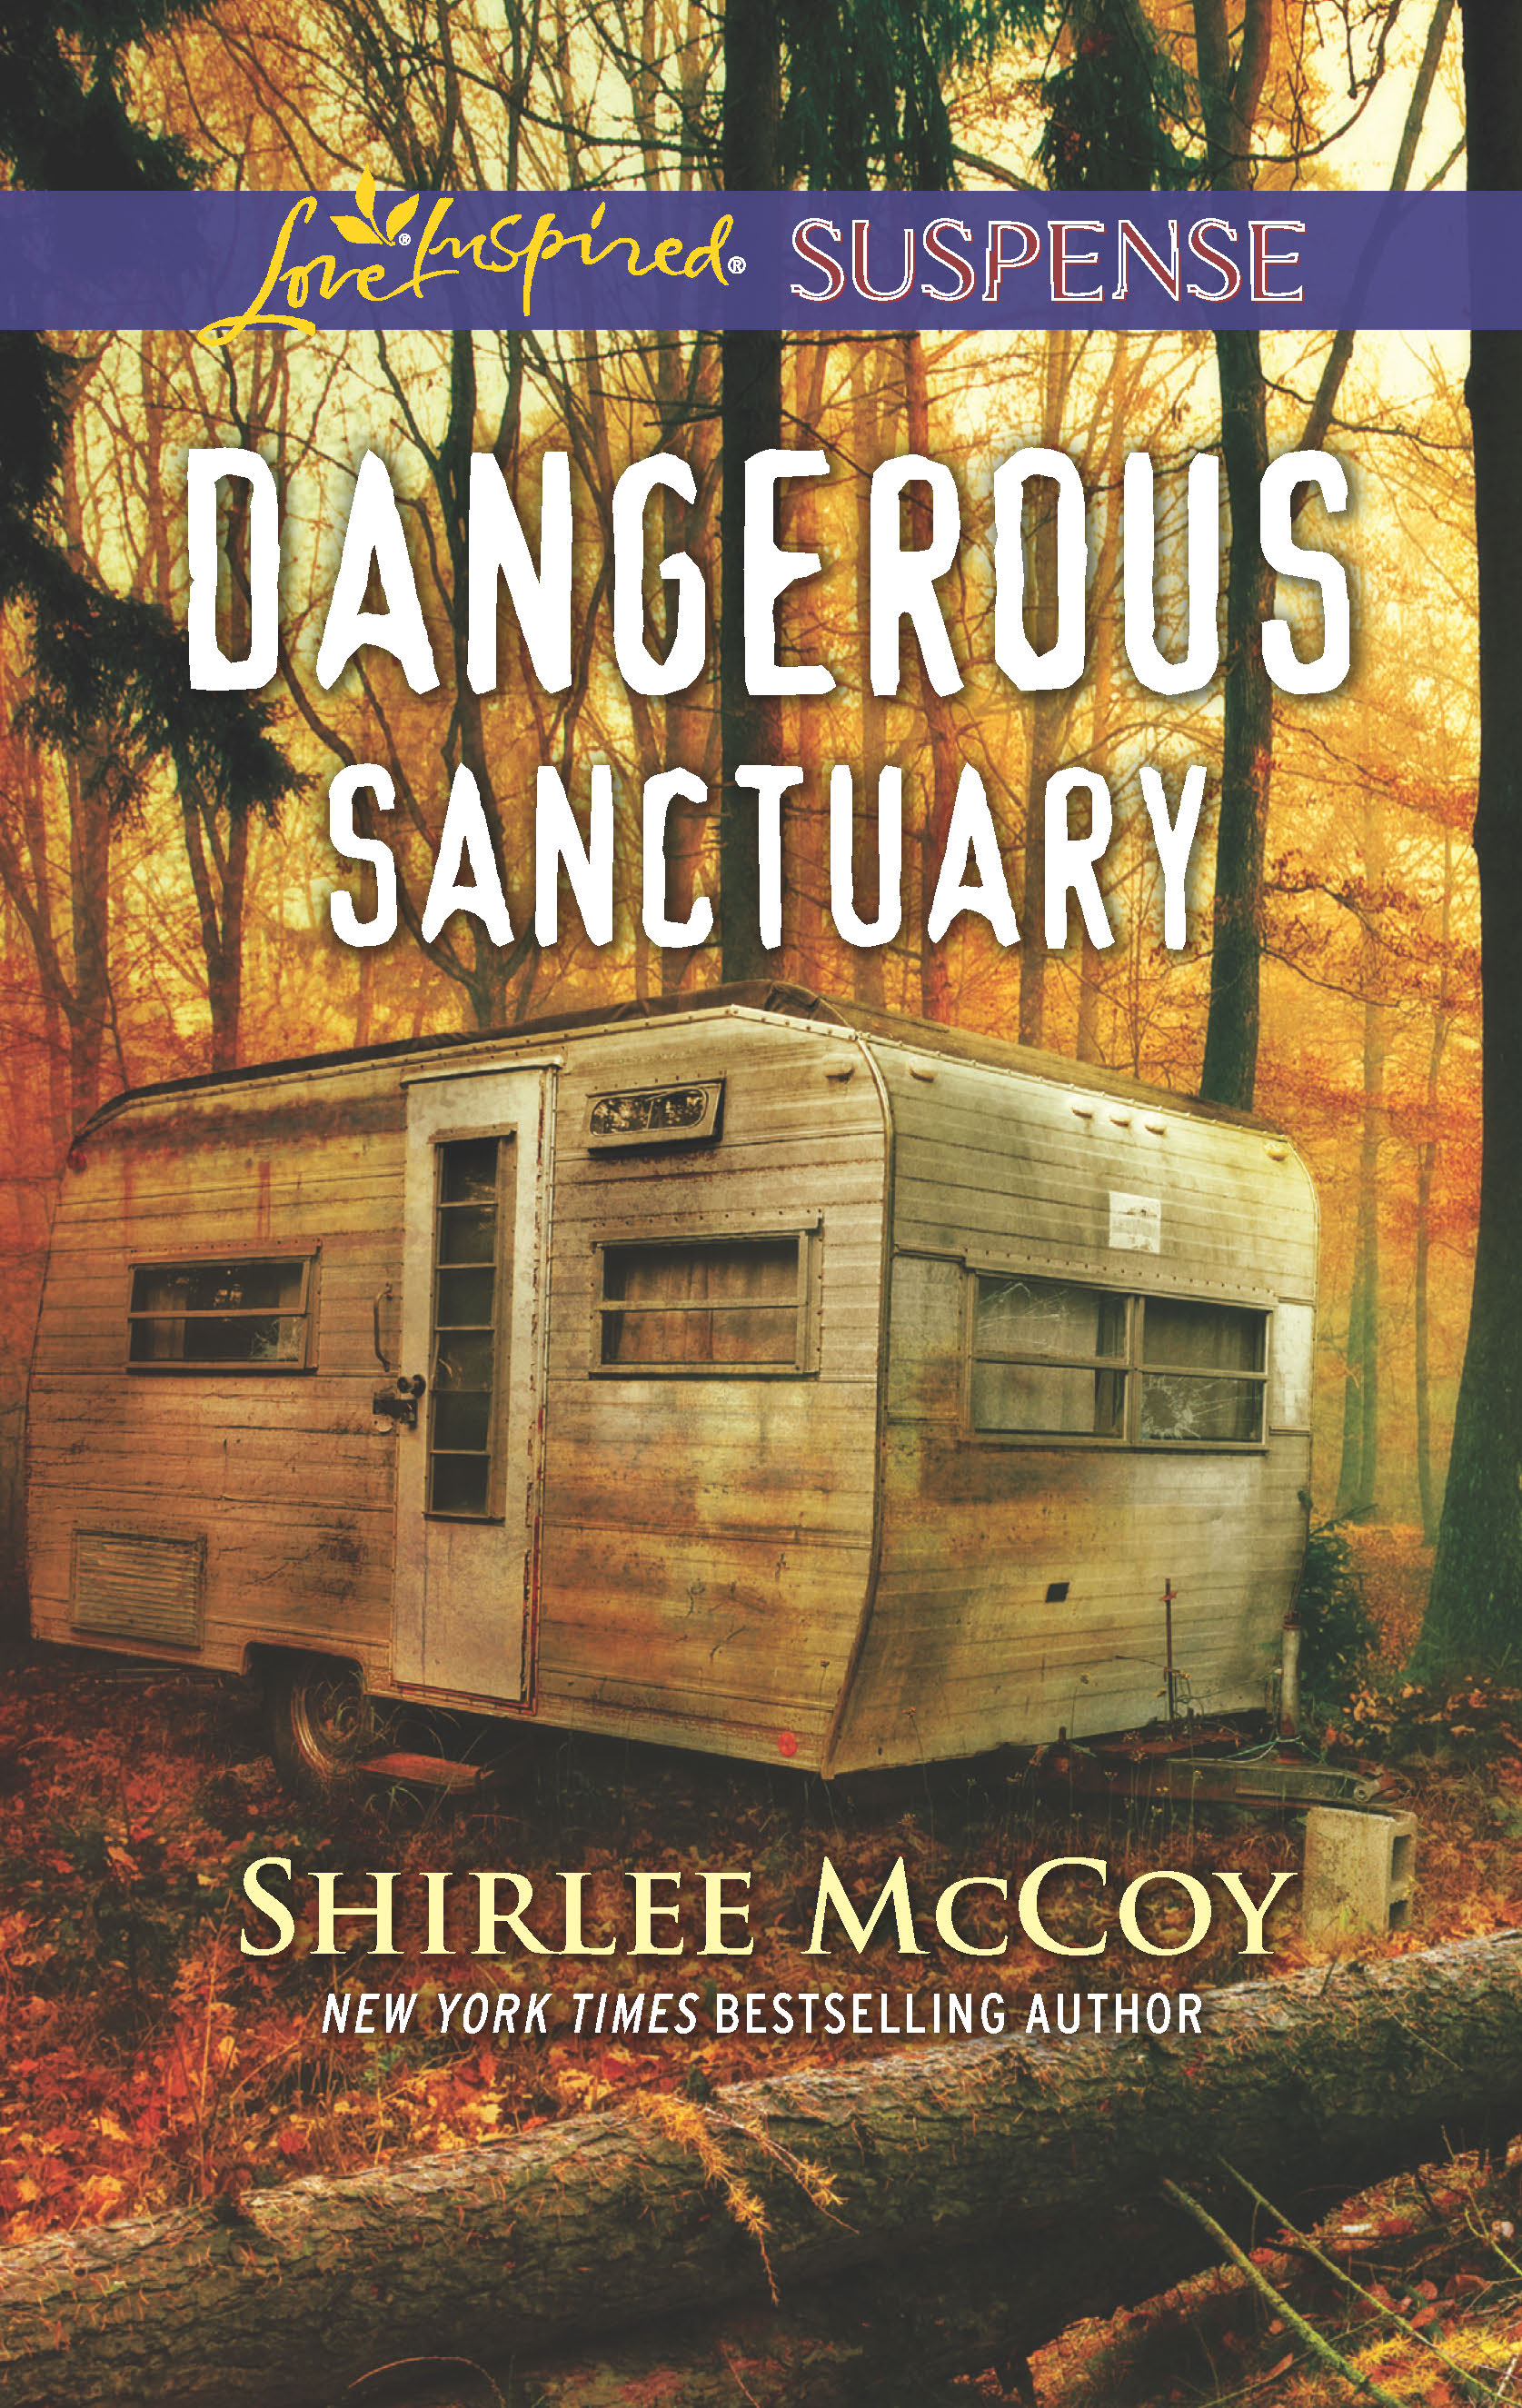 Love Inspired Suspense author Shirlee McCoy - Dangerous Sanctuary book cover